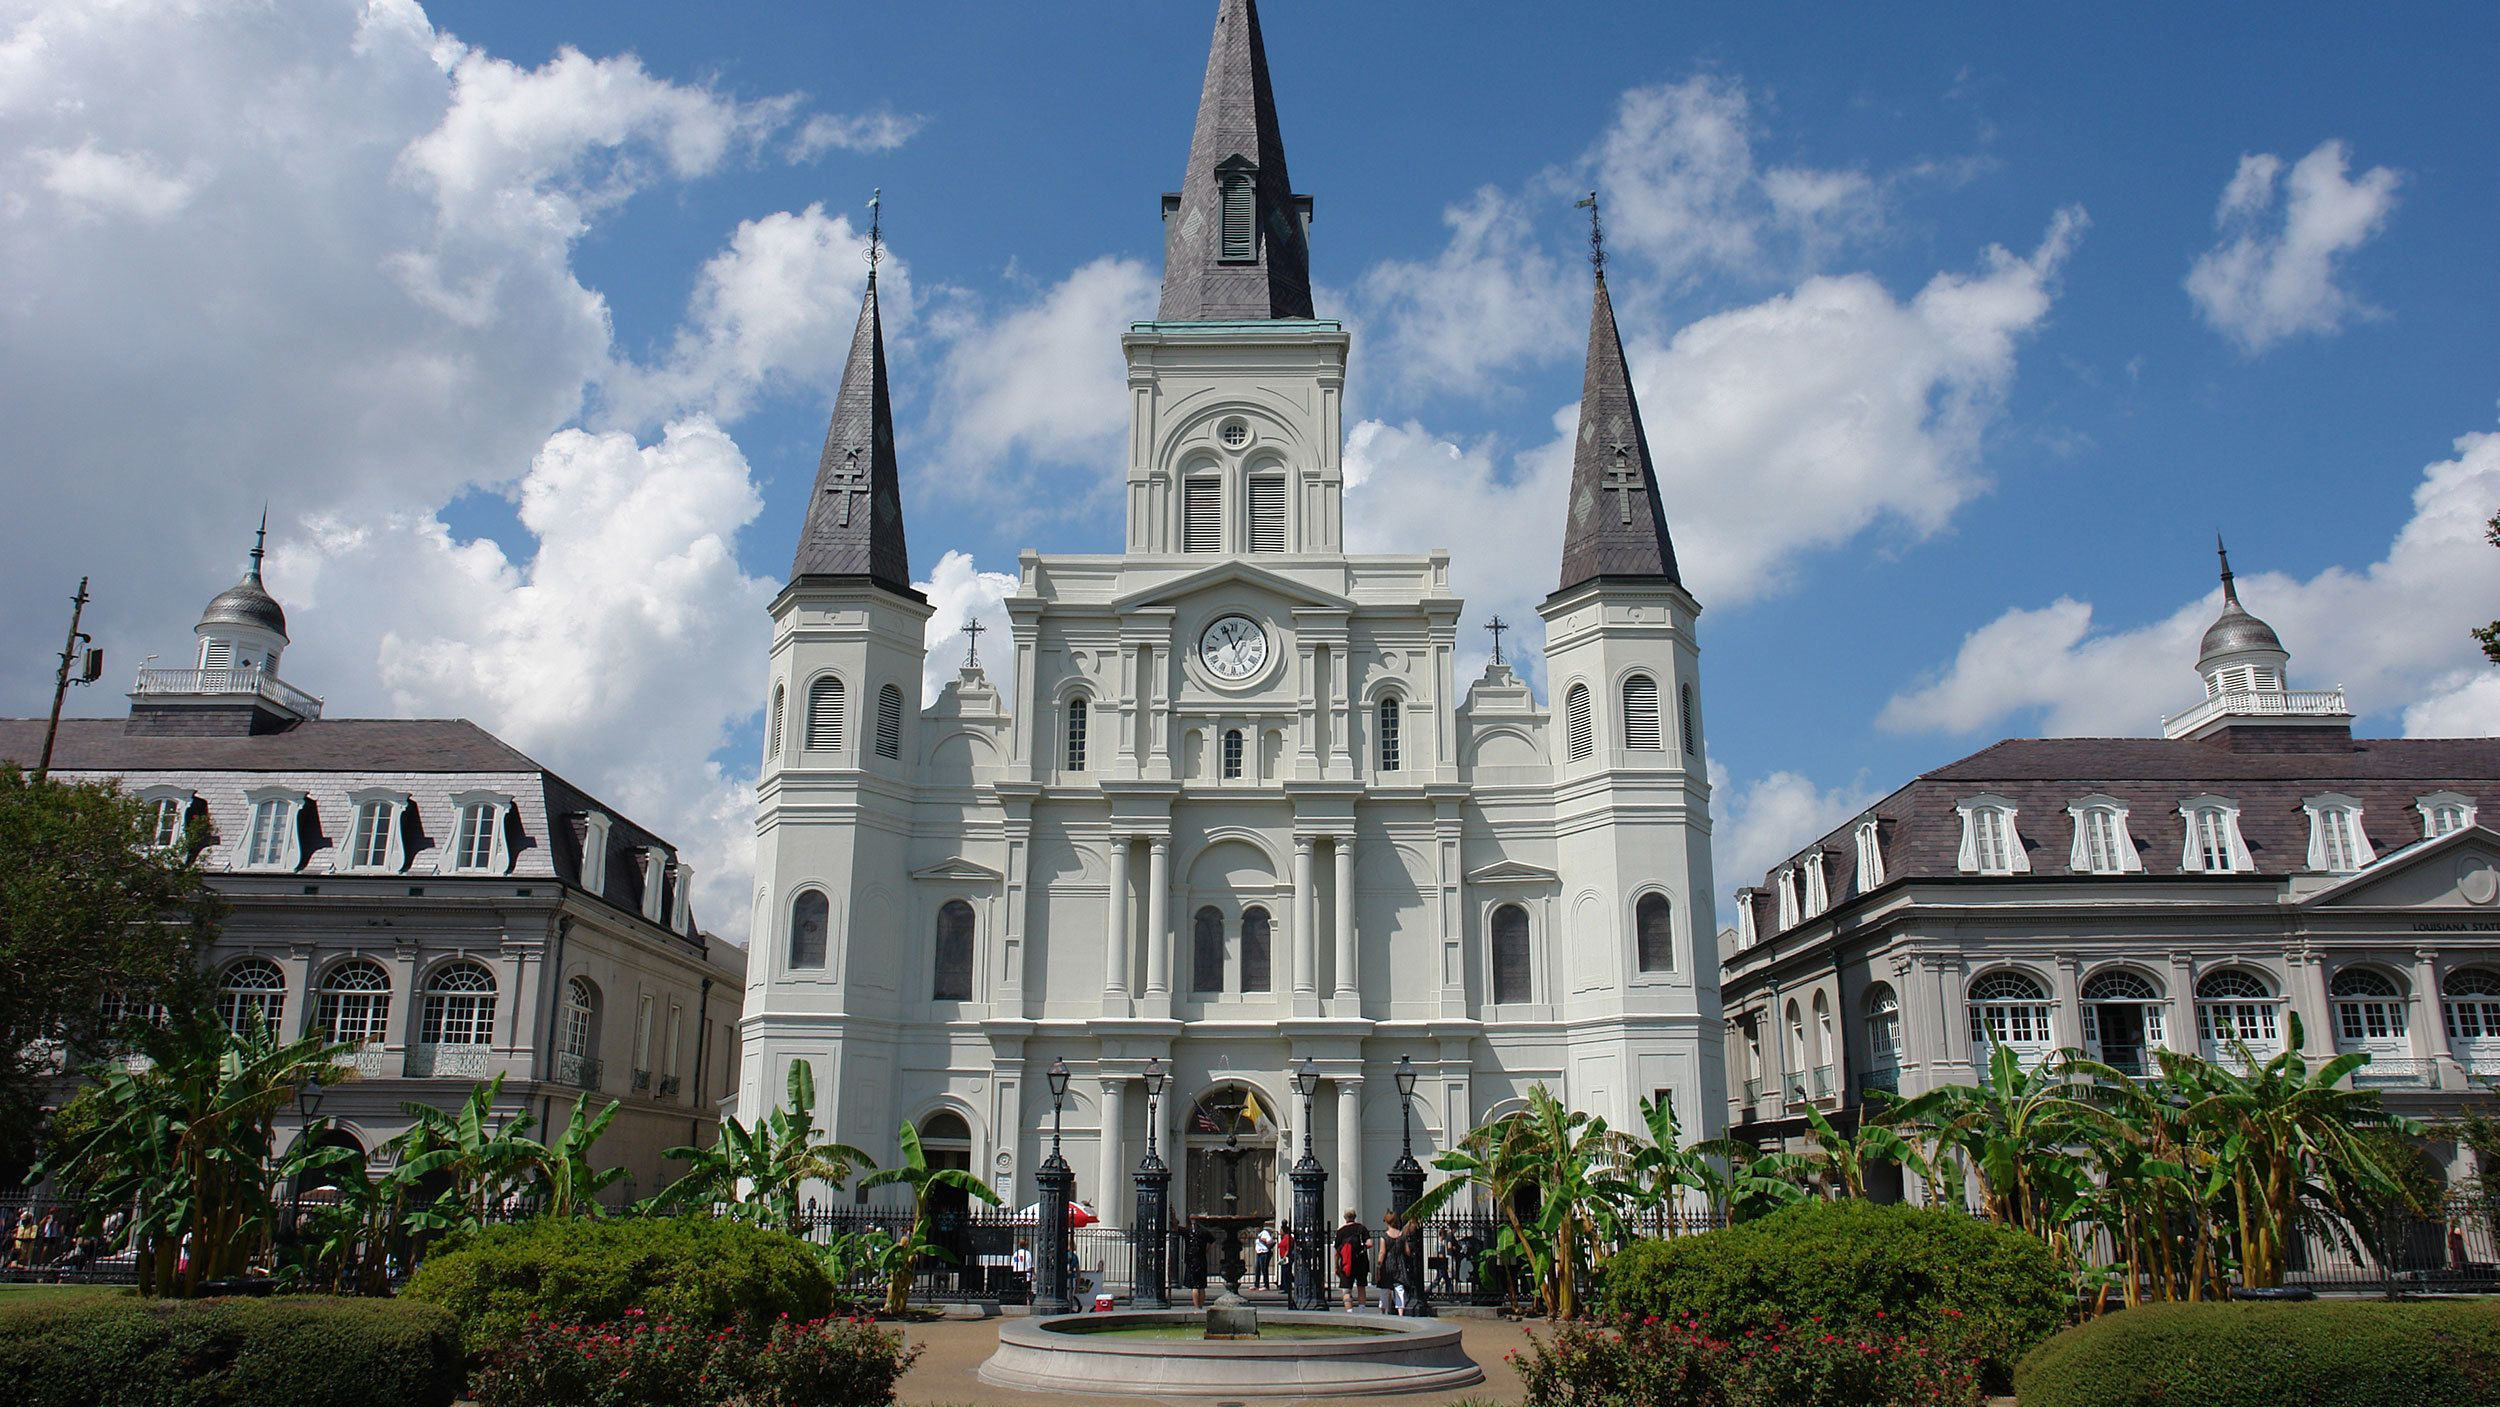 St Louis Cathedral at Jackson Square in New Orleans